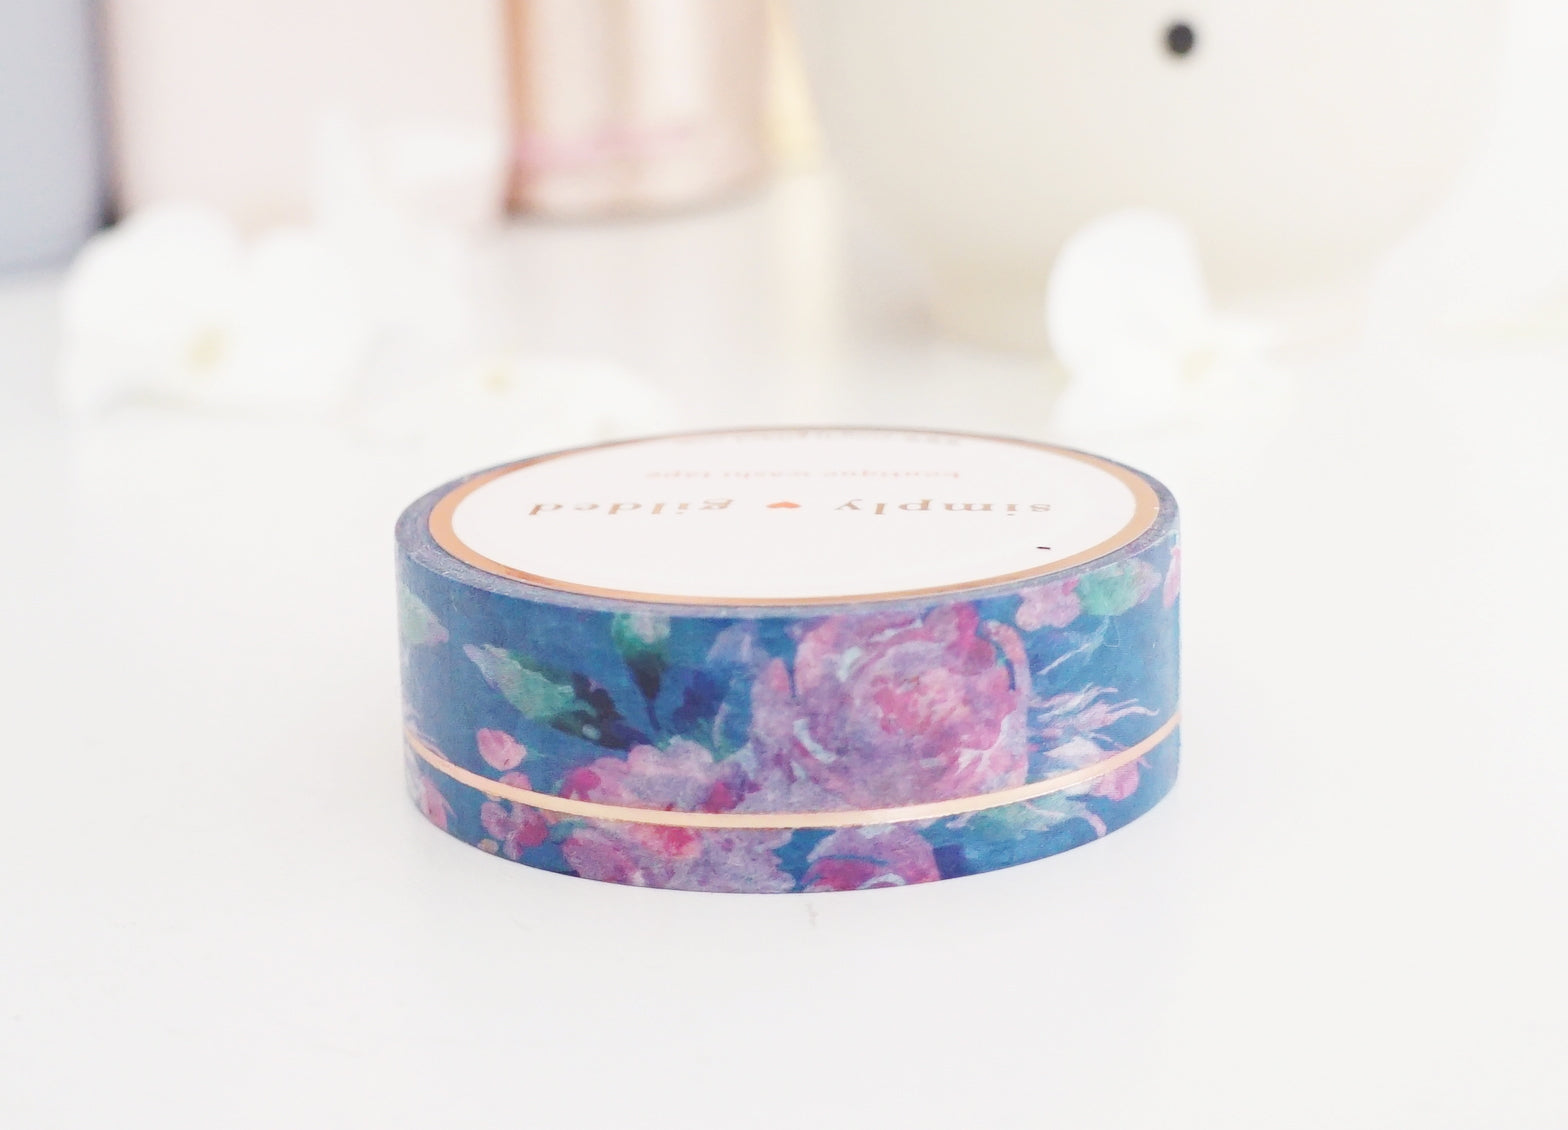 WASHI TAPE 15mm BLUE & PINK FLORAL SIMPLE LINE + rose gold foil (August 2 release)